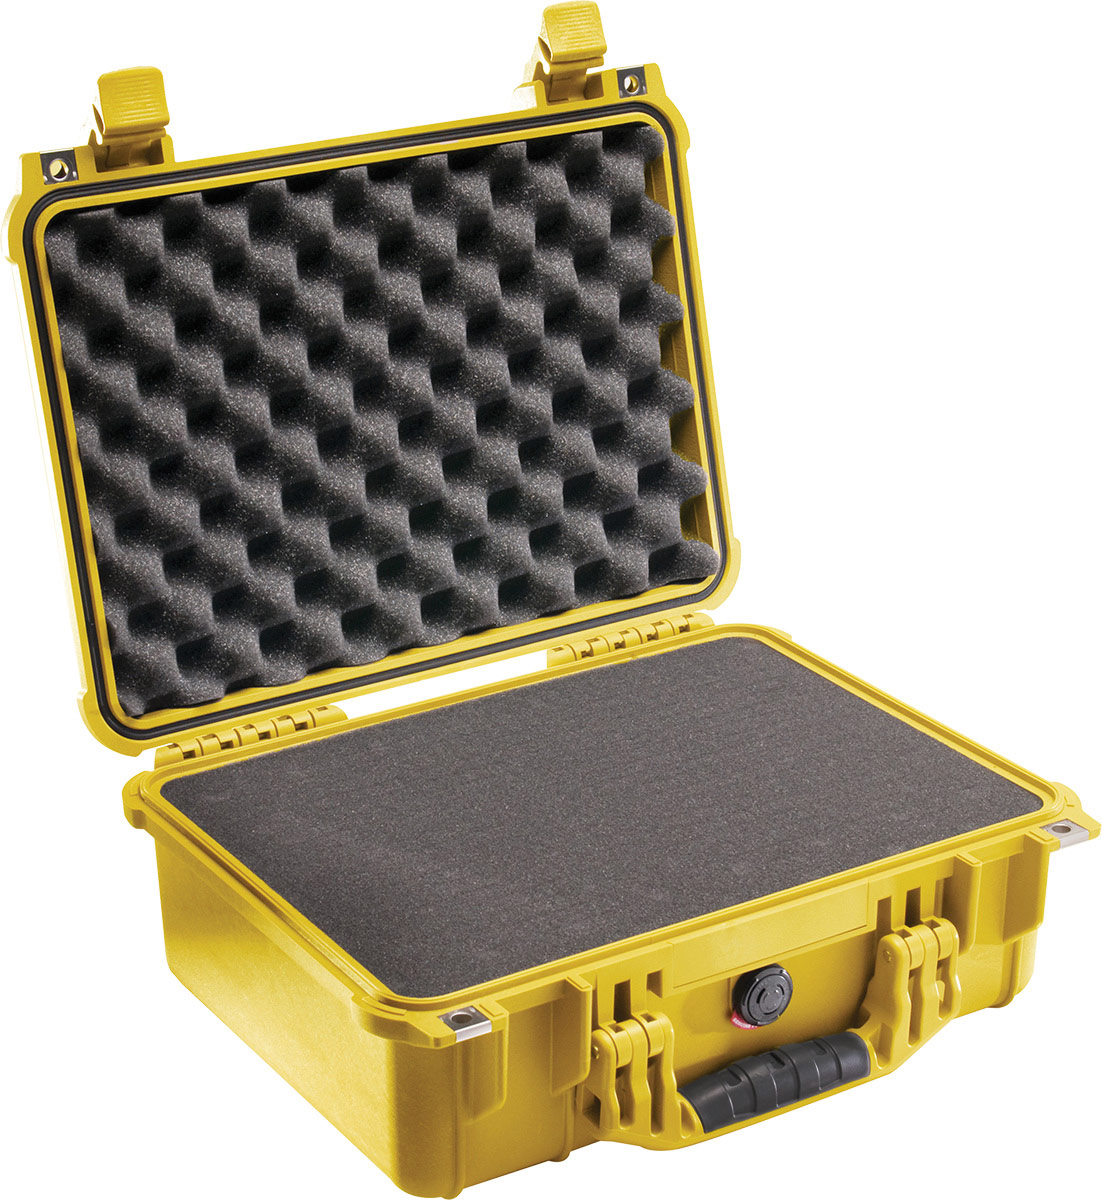 pelican 1450 yellow foam tool case